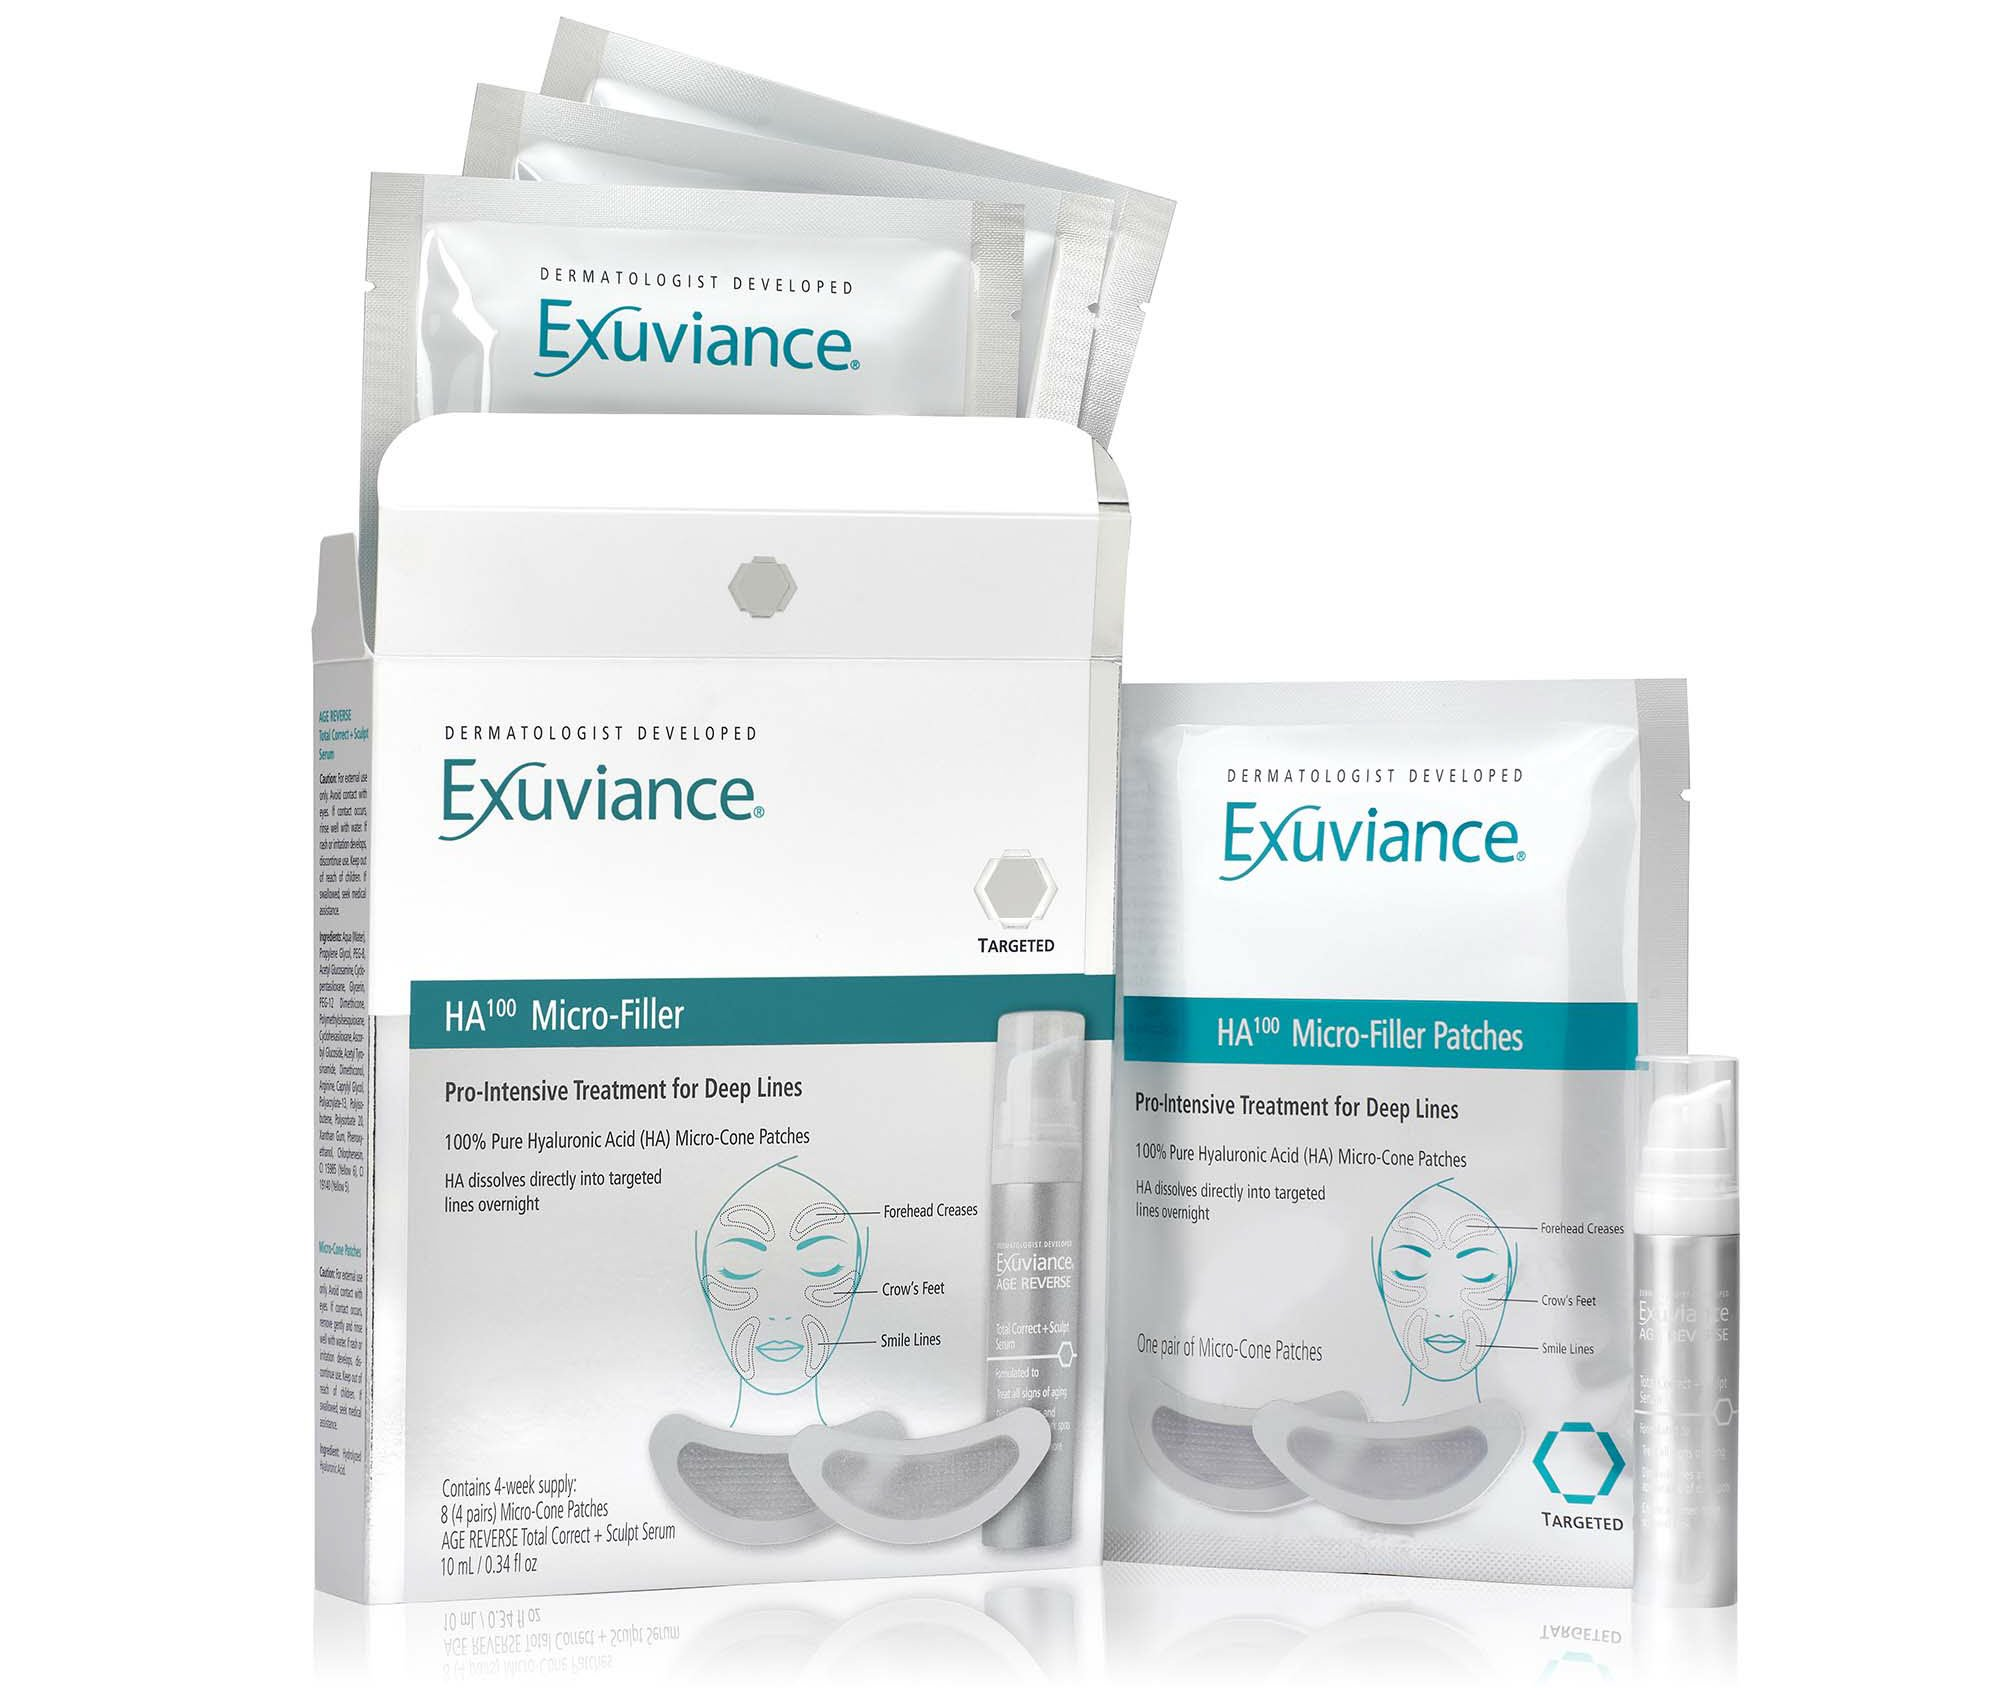 Exuviance HA100 Micro-Filler